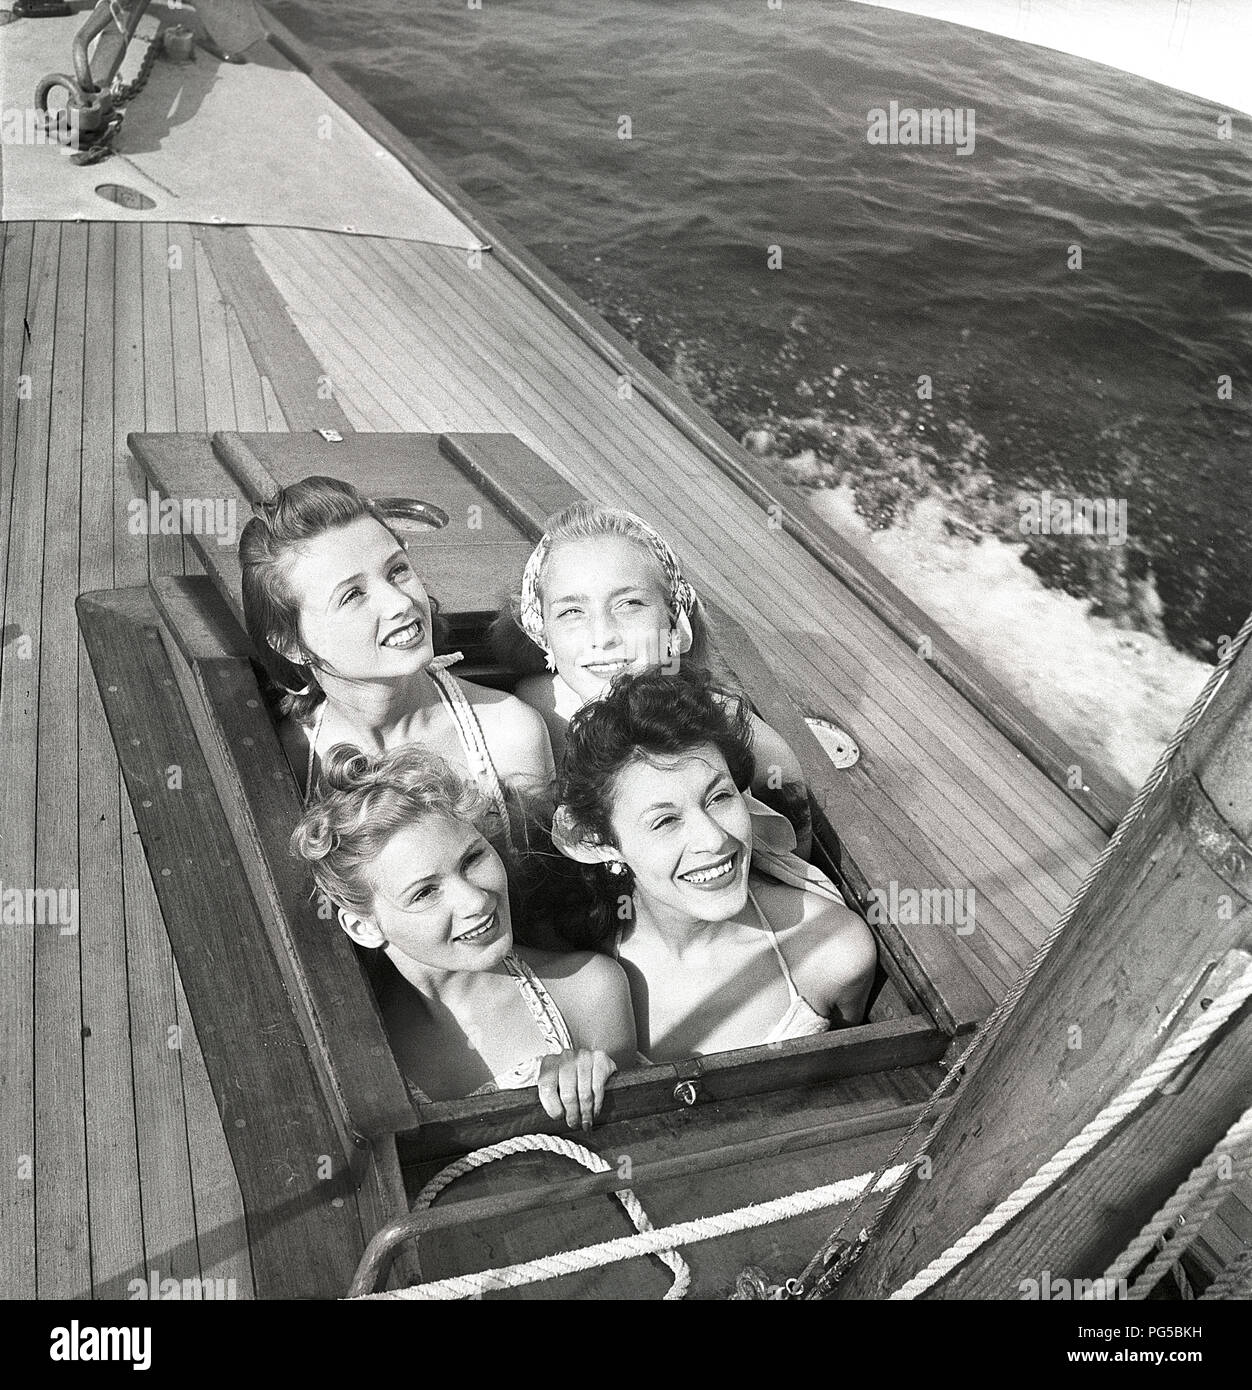 1940s sailing boat. Four young women are enjoying a day at sea on a fashionable wooden sailing boat. They have been below deck and now they are looking up through the hatch and smiles.  Sweden 1946 Photo Kristoffersson ref AC101-5 - Stock Image